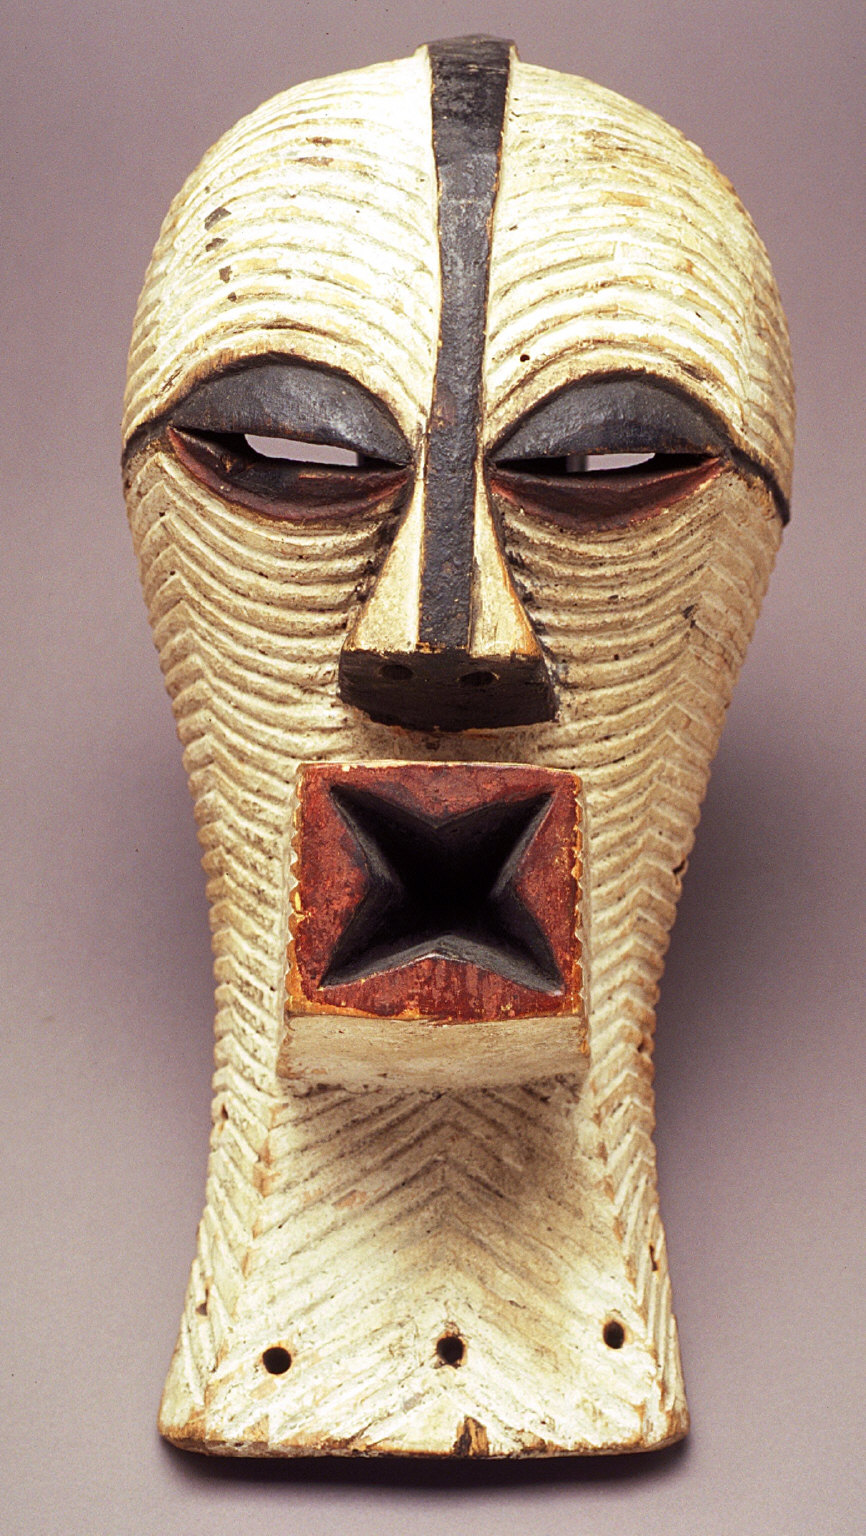 Kifwebe mask with star-shaped, protruding mouth